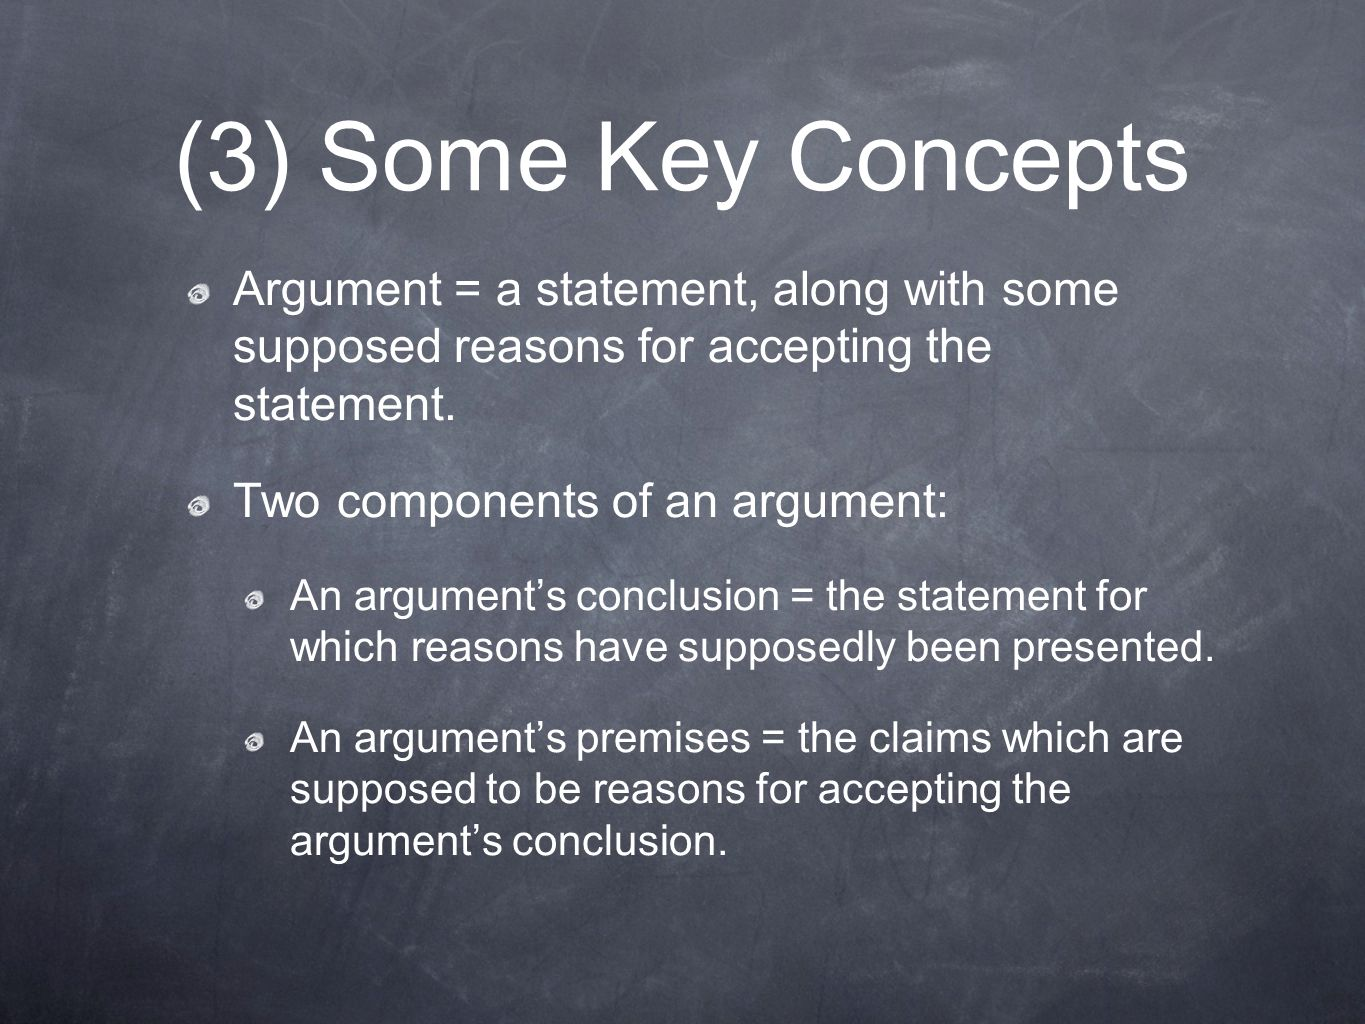 (3) Some Key Concepts Argument = a statement, along with some supposed reasons for accepting the statement.